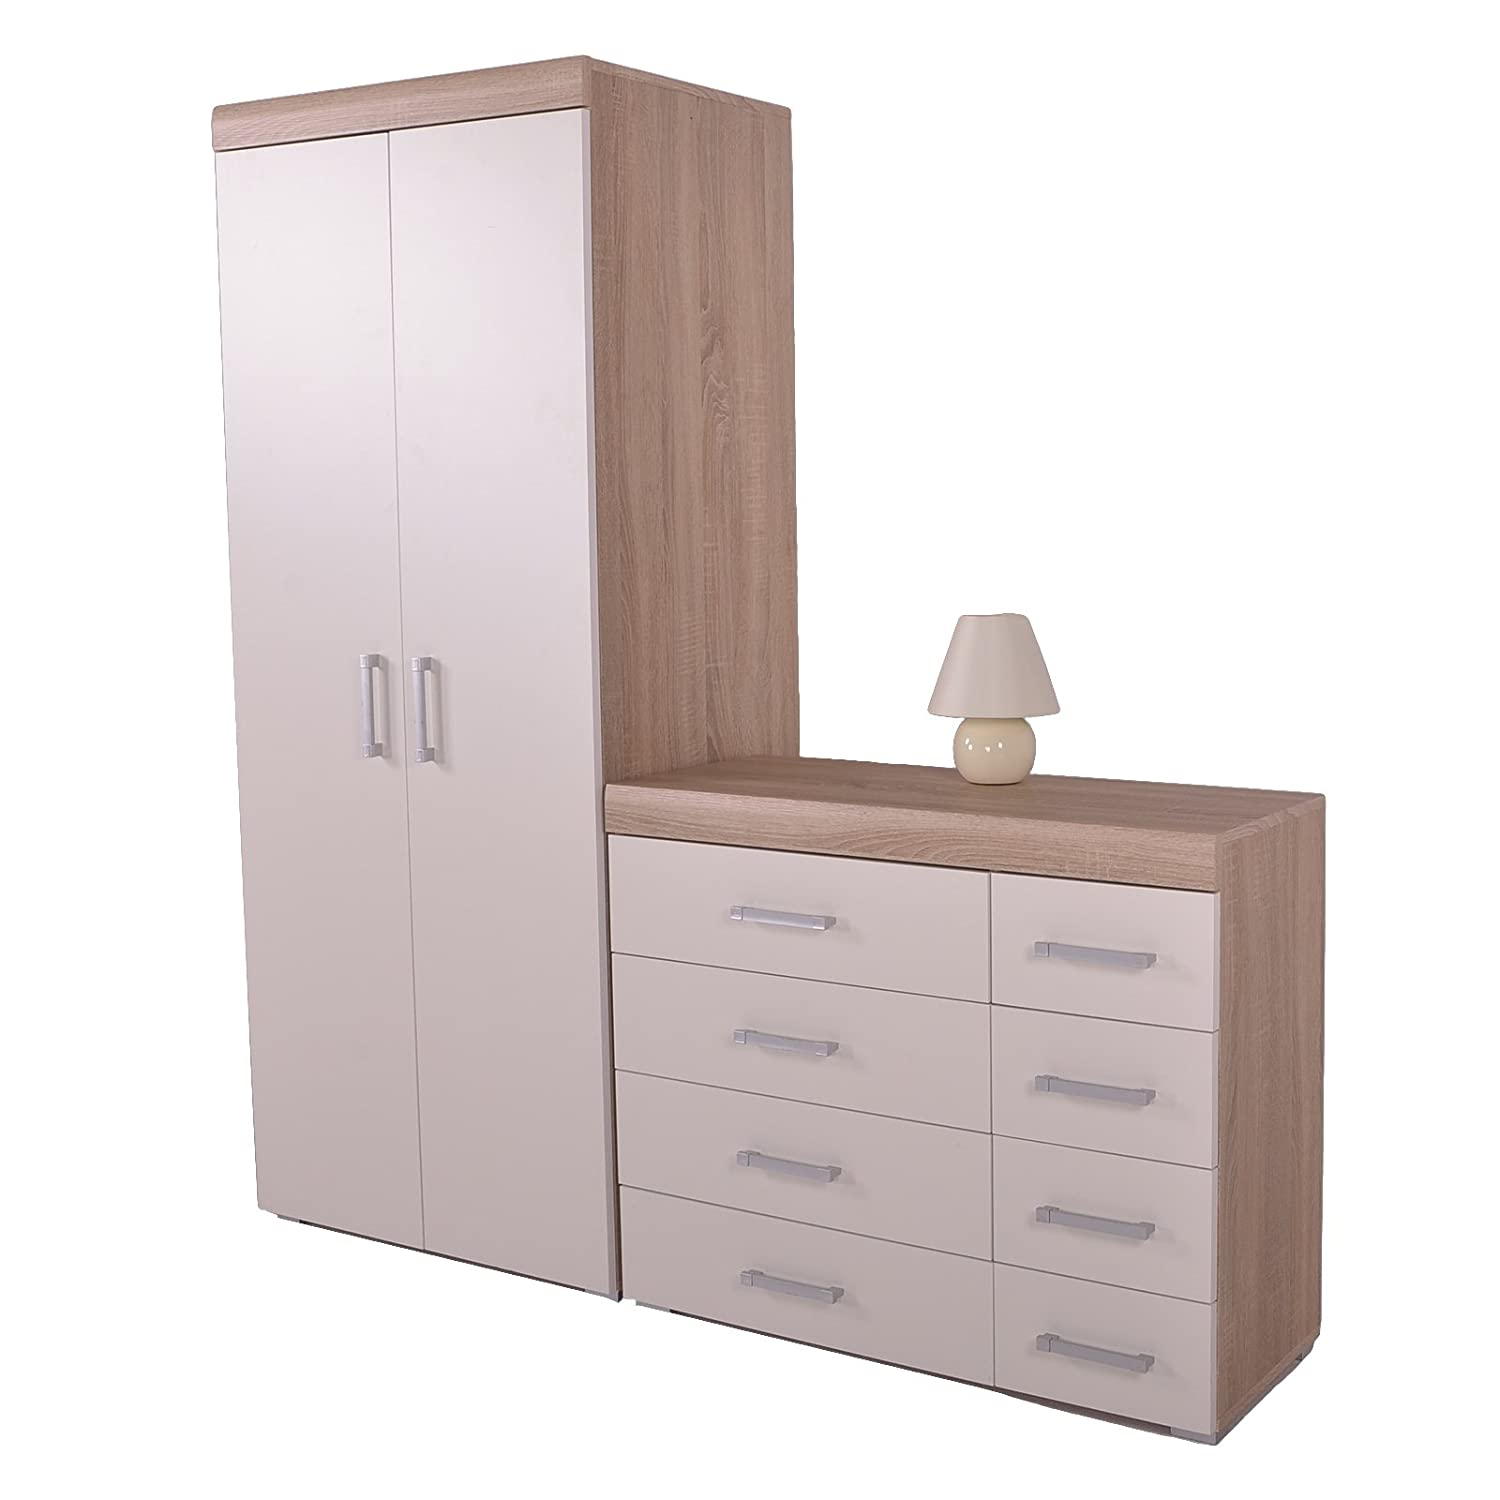 DP 4+4 Drawer Chest Drawers & 2 Door Wardrobe White & Oak Effect Bedroom Set